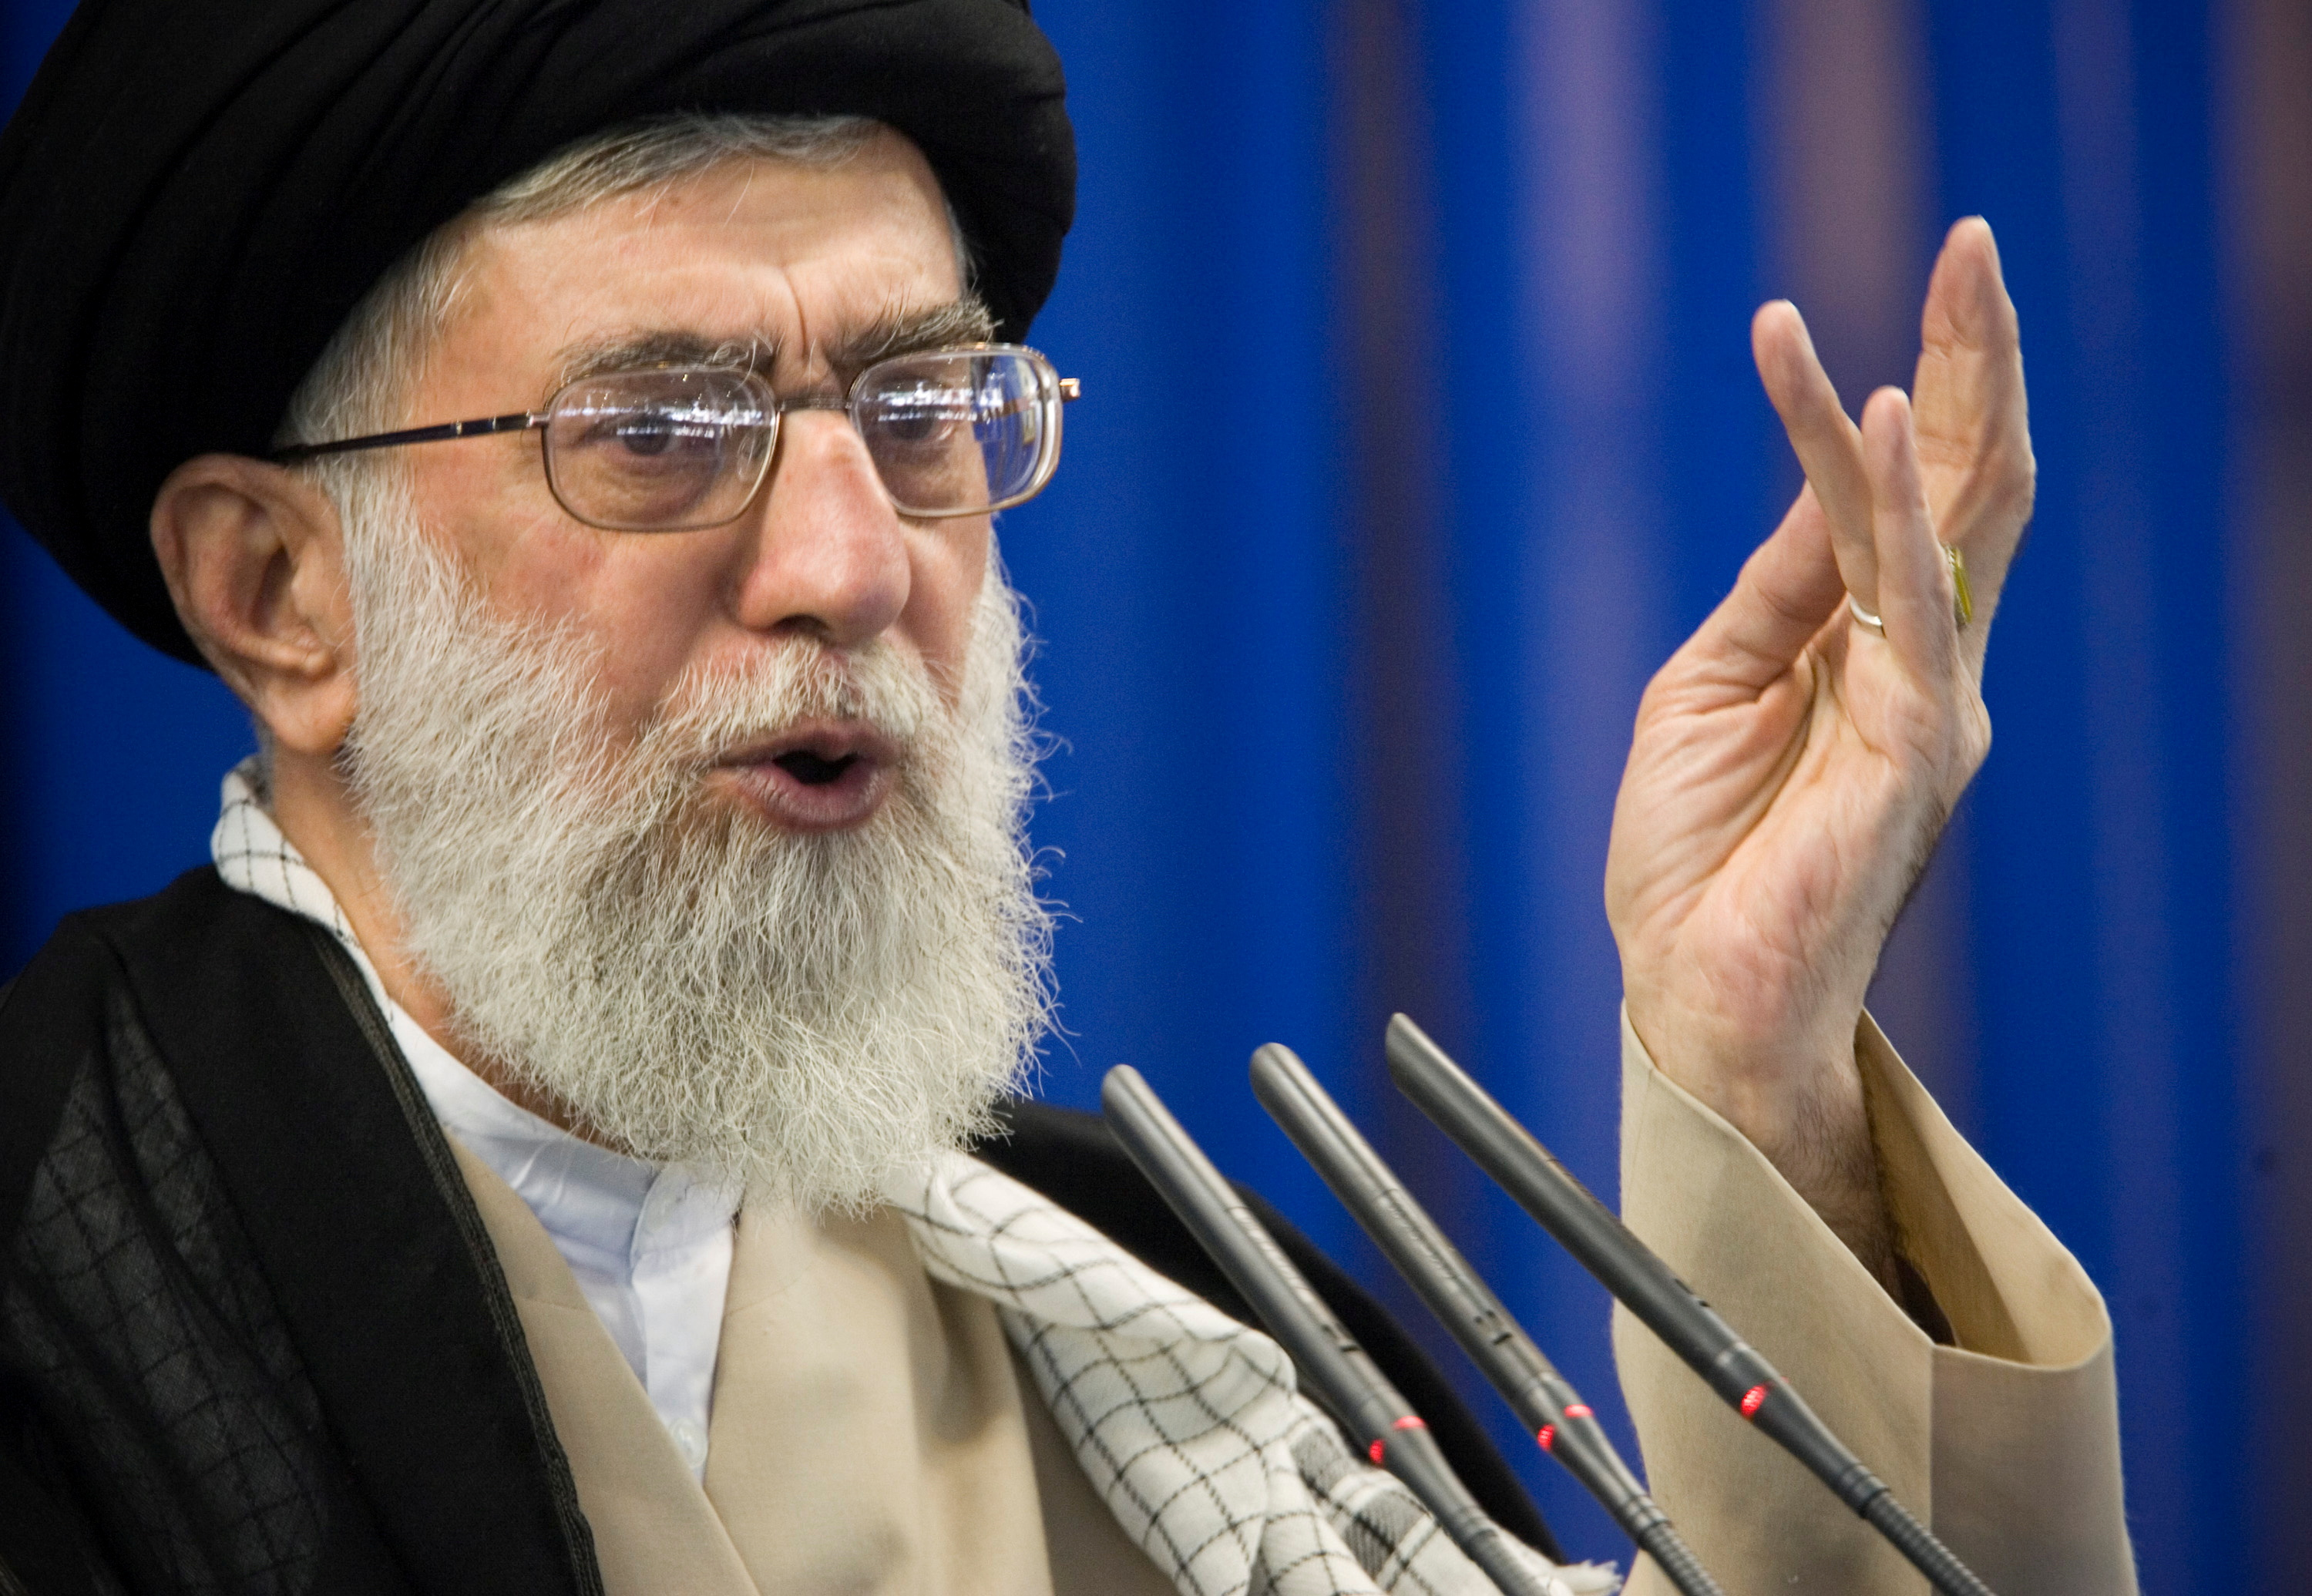 Analysis: Khamenei's election agenda may slow revival of Iran nuclear deal